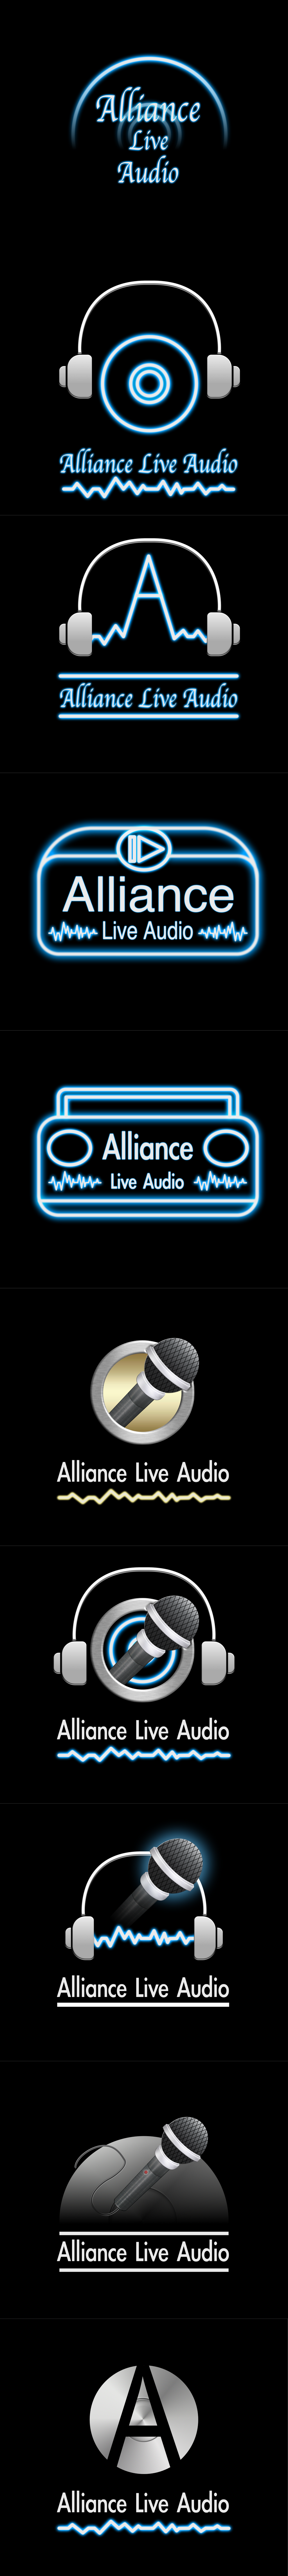 alliance_live_audio_logos_by_leduc_galle